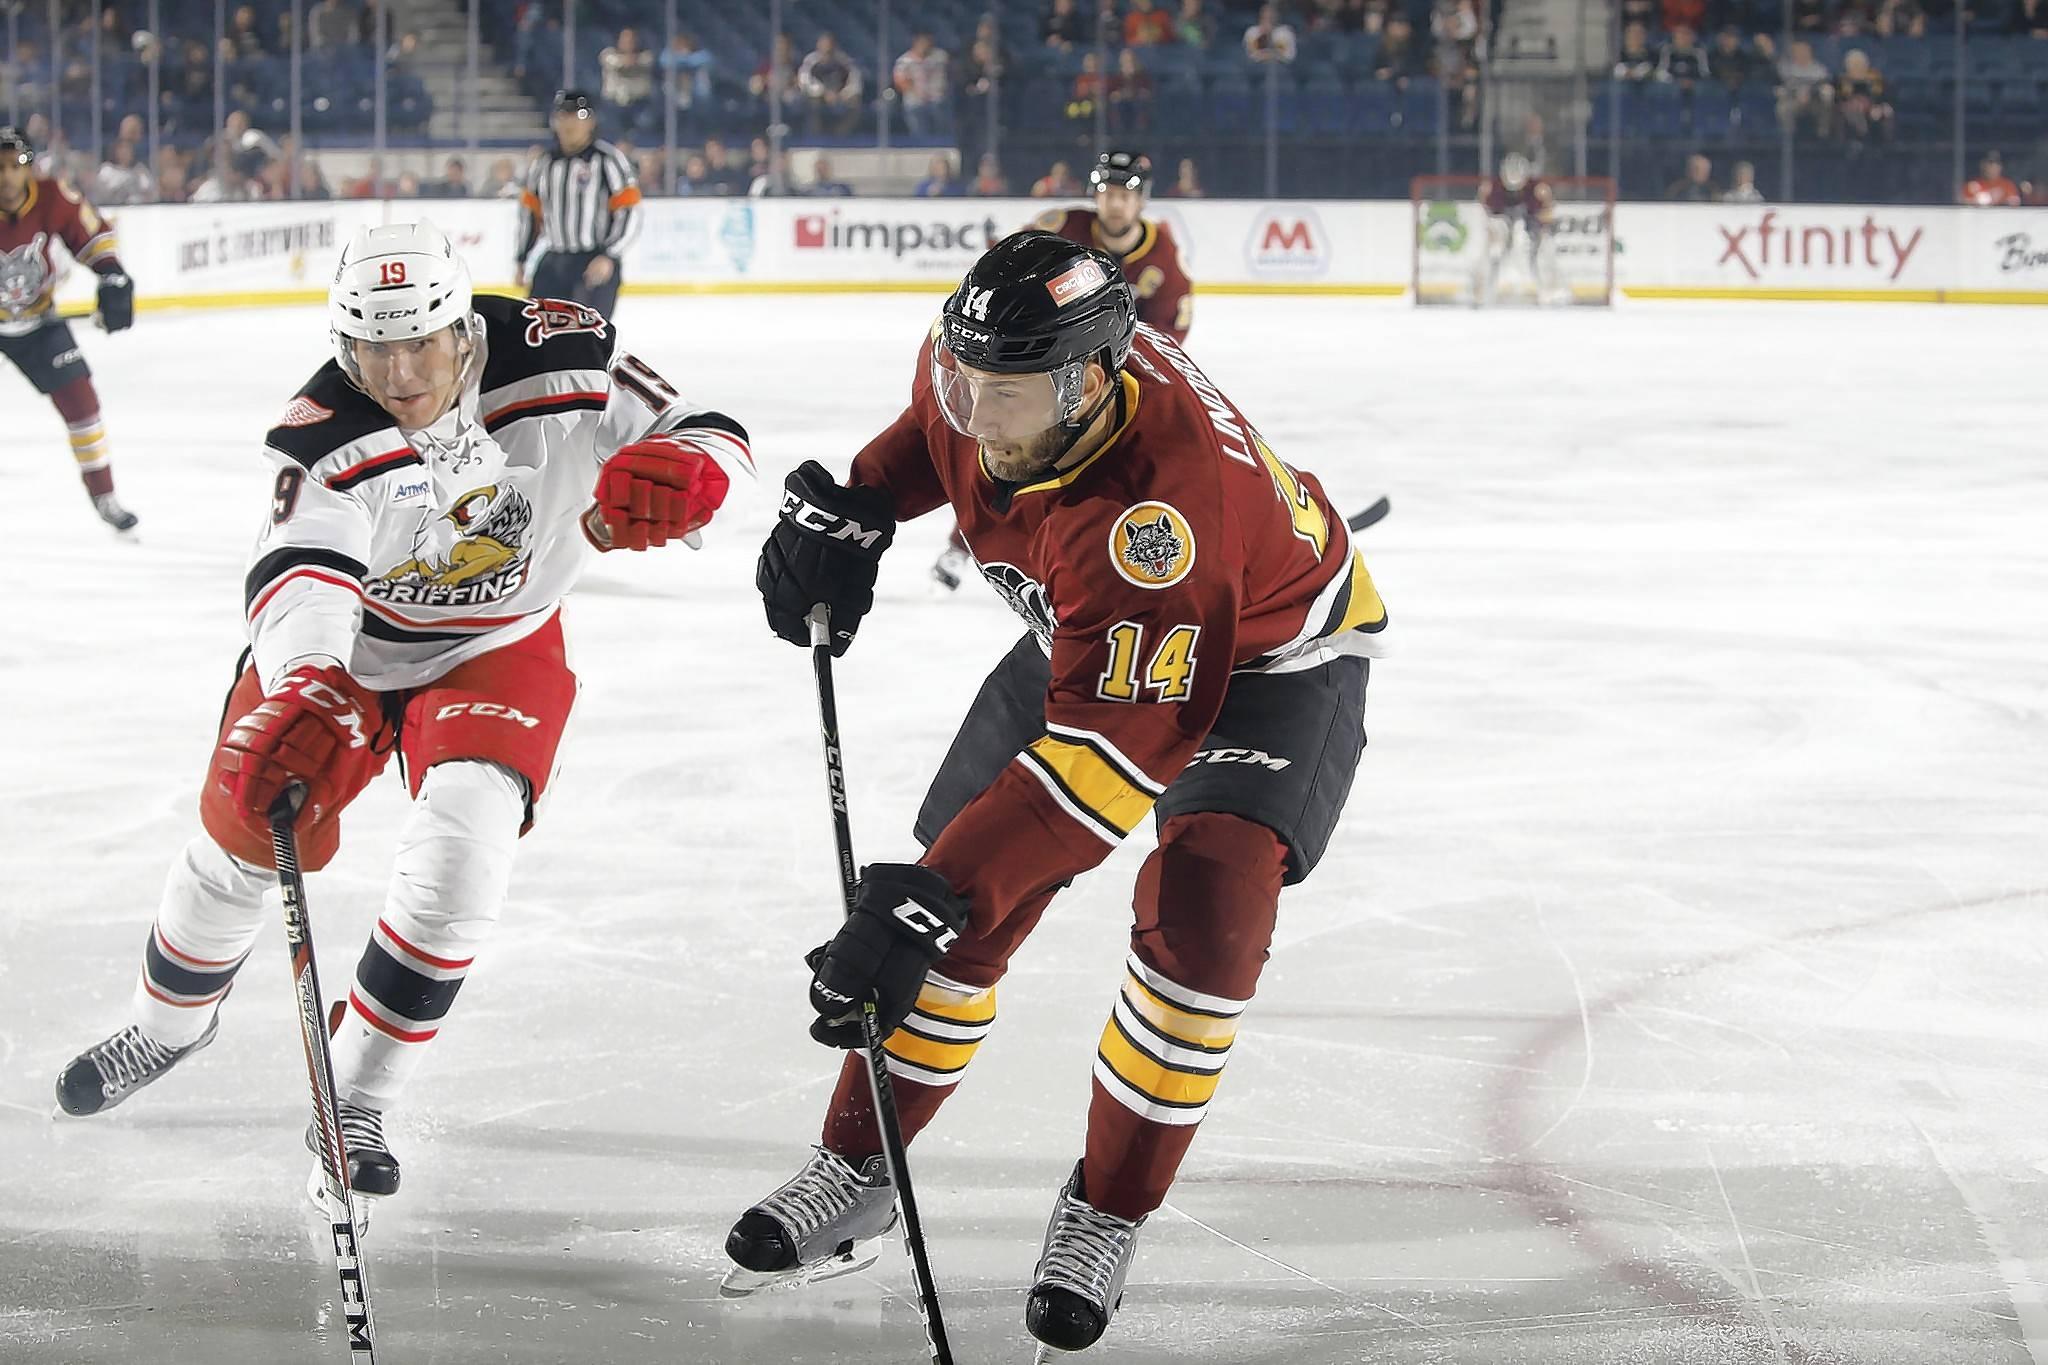 Chicago Wolves defenseman Petteri Lindbohm (14) will try to slow down the high-scoring attack of the Grand Rapids Griffins when the two teams meet in Game 5 Saturday at Allstate Arena.